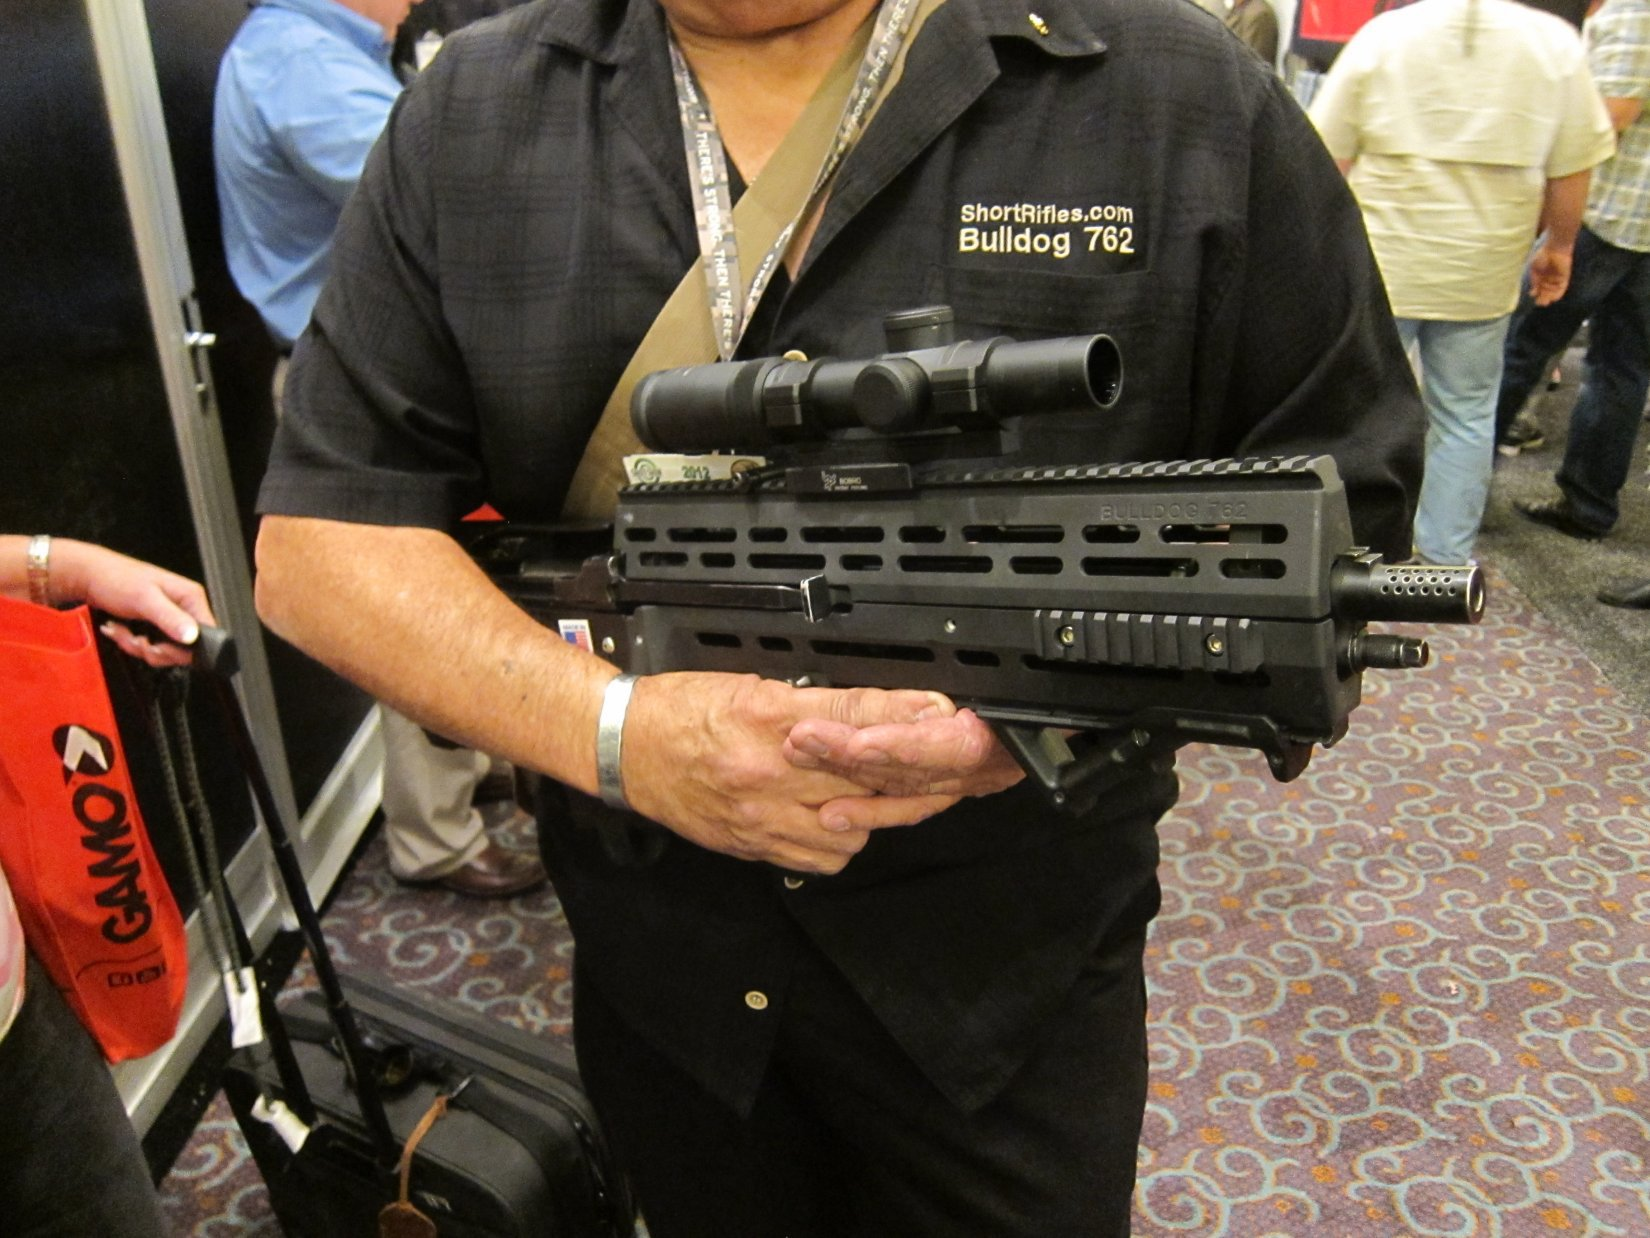 Short Rifle Stock System SRSS BullDog 762 Gen-4 (also written SRSS BullDog762 Gen-4) 16″ Bullpup M14/M1A Battle Rifle/Carbine (7.62mm NATO/.308 Win.) with GRSC CRS-16 M4-62 Tactical Scope for 21st-Century Military Special Operations Forces (SOF) Assaulters/Operators and Civilian Tactical Shooters! (Photos!)